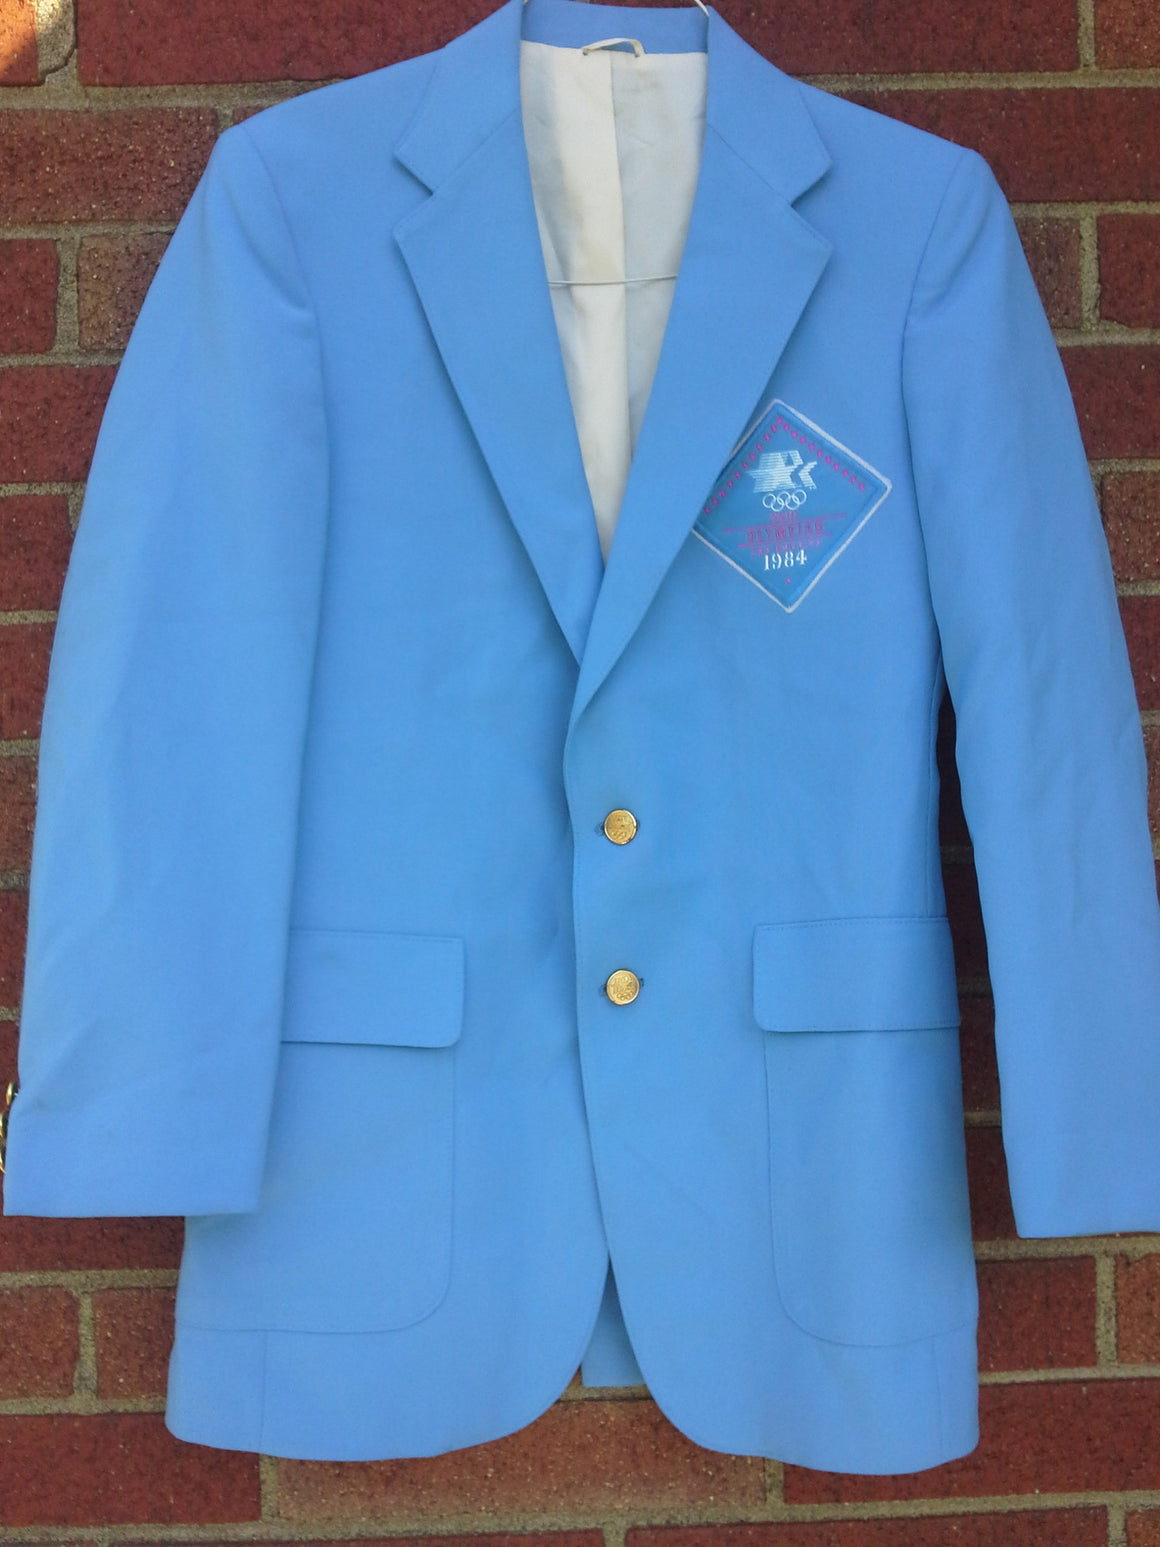 Vintage 1984 Los Angeles Olympics Levis official staff uniform blazer - 38 Long